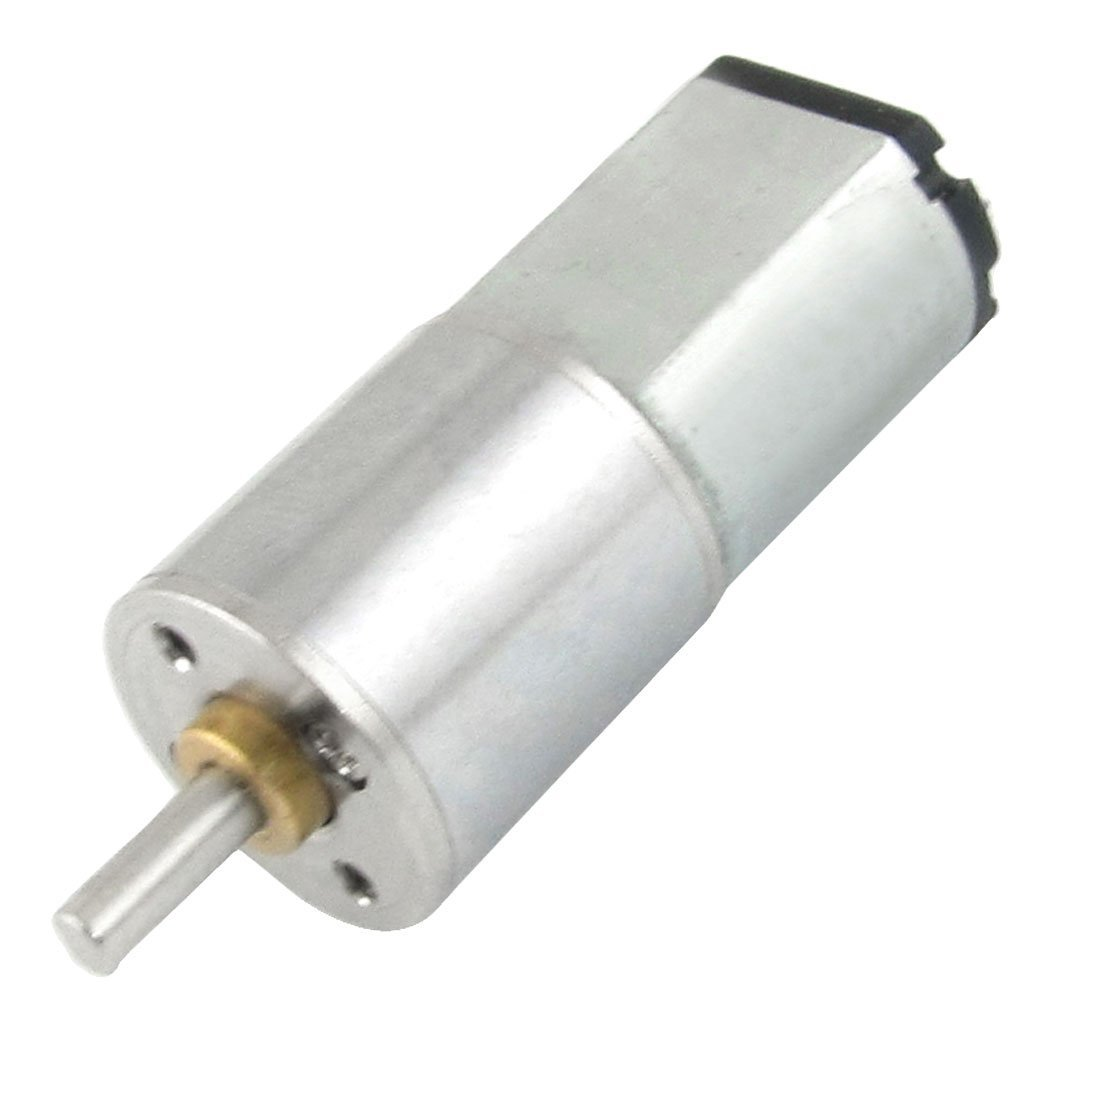 uxcell 40RPM 6V 0.6A High Torque Electric DC Geared Motor Replacement